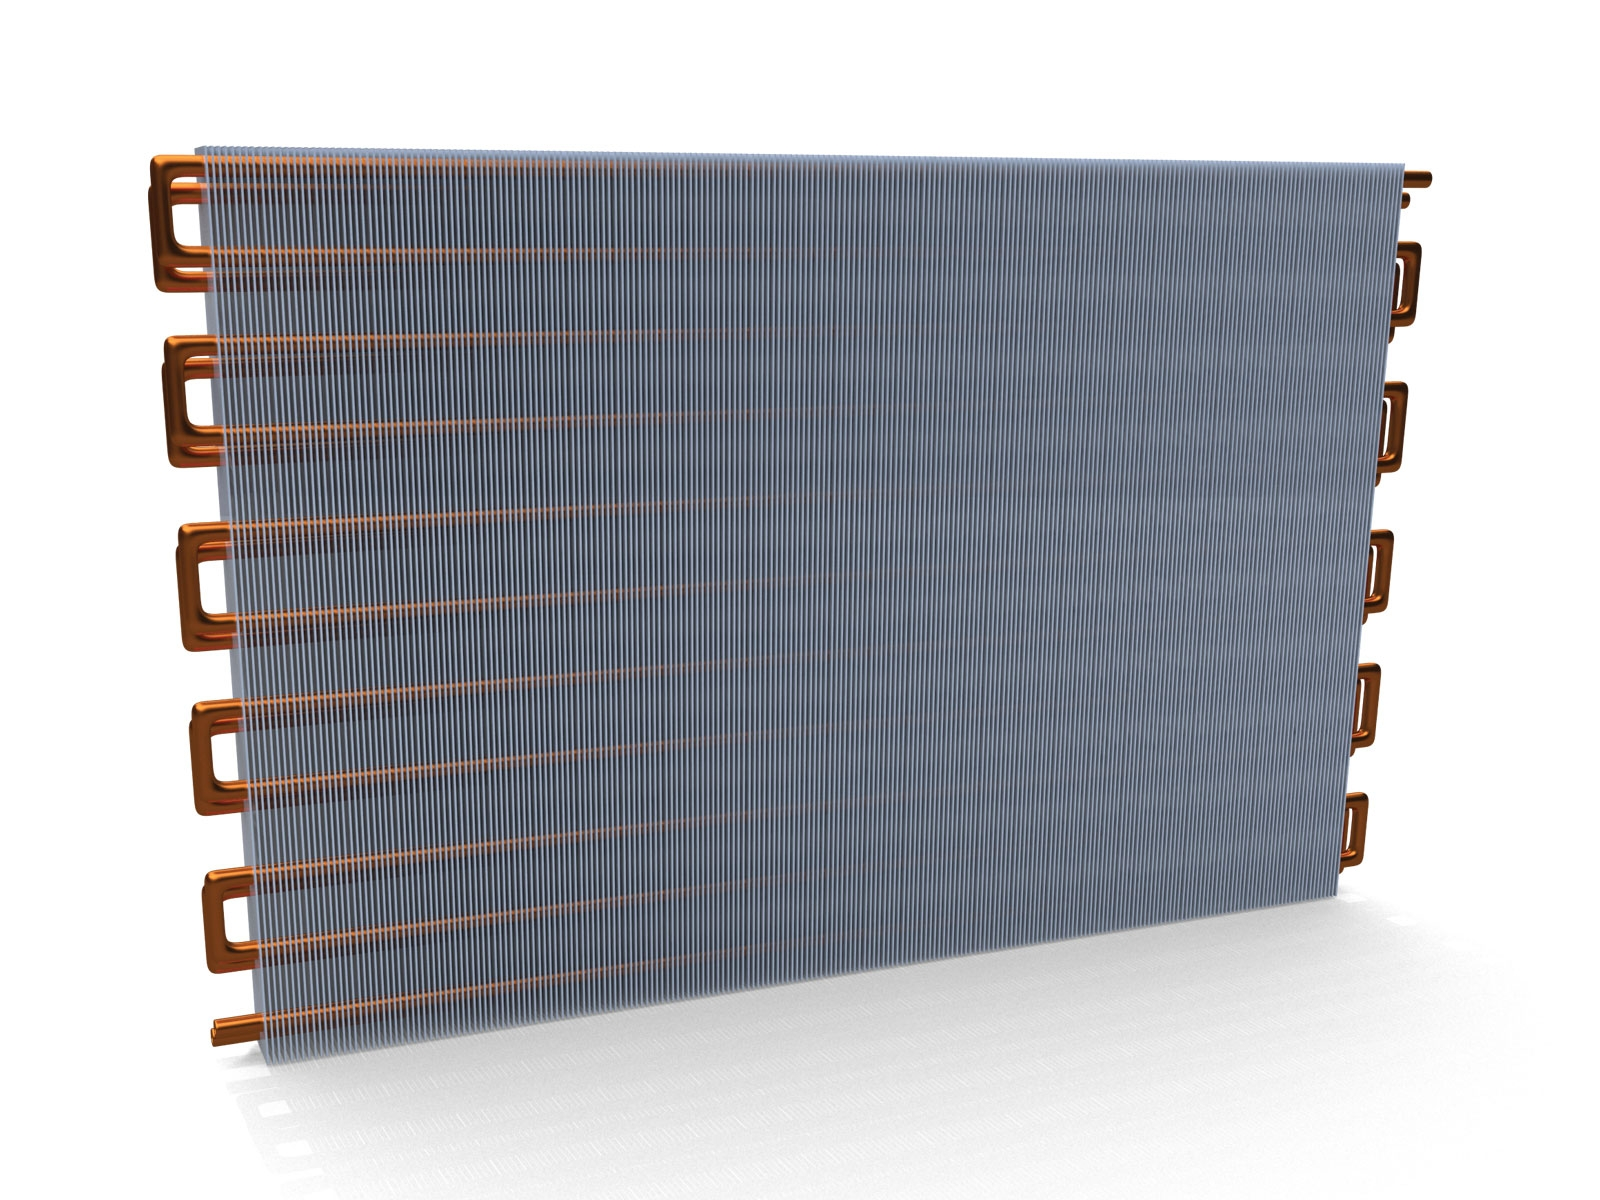 3D technical product model illustration of air conditioning coil